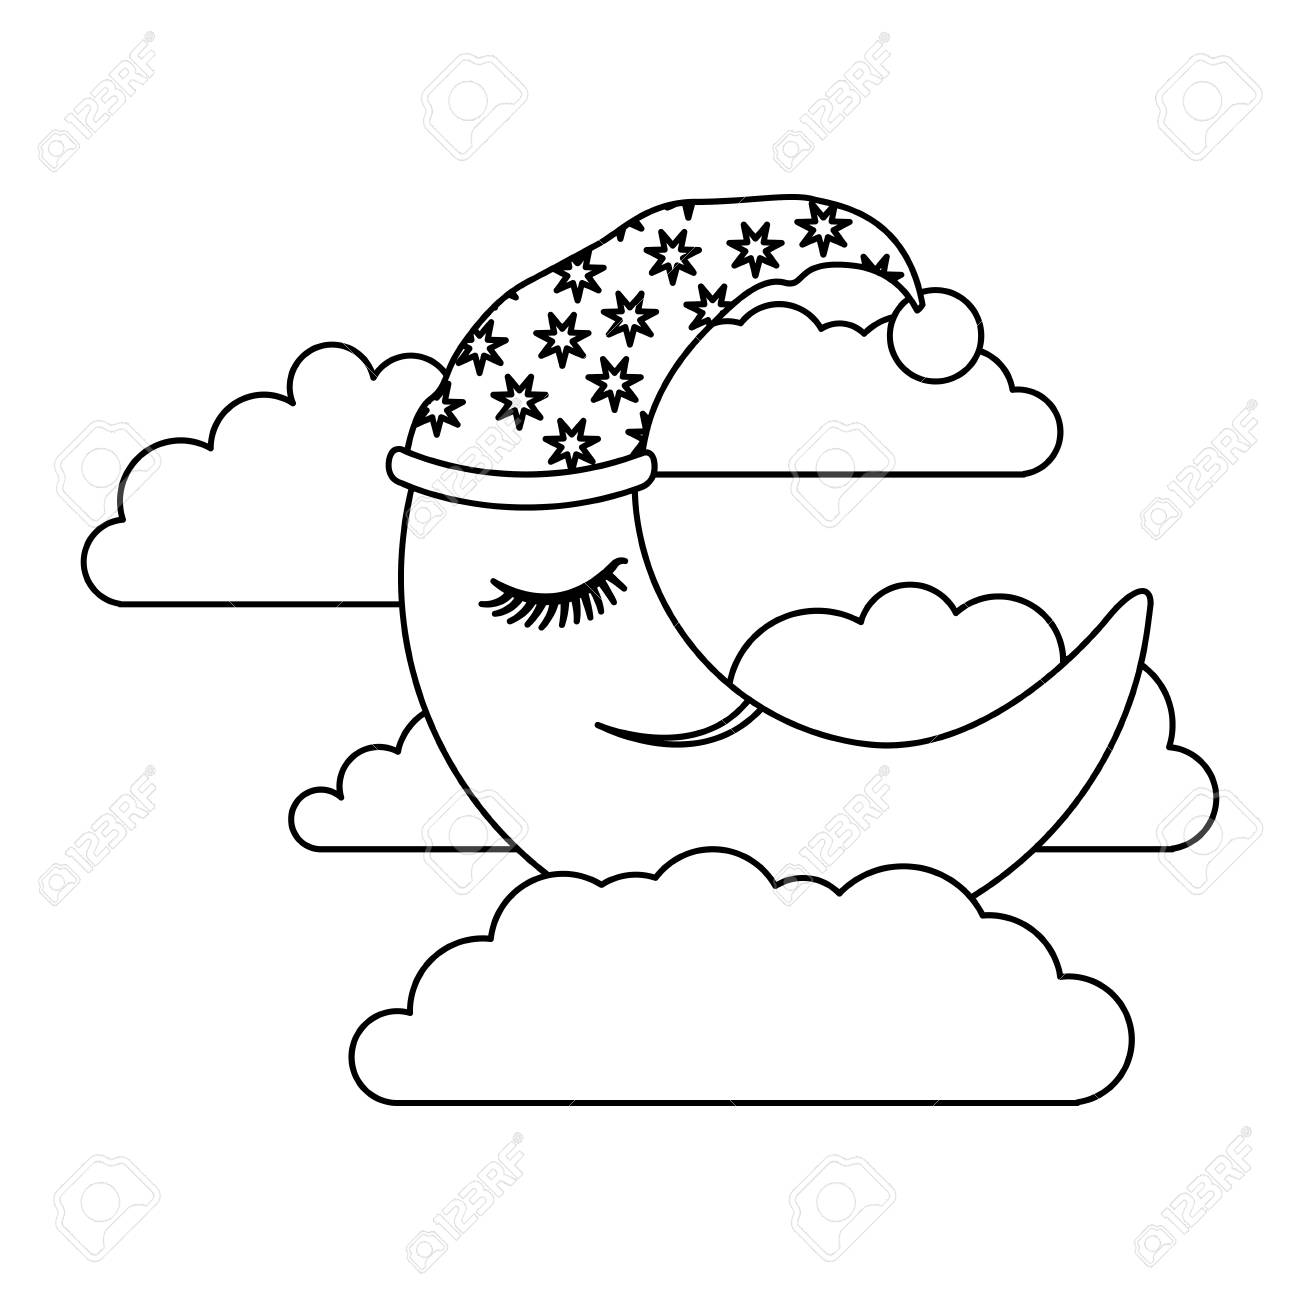 1300x1300 Moon Half Caricature With Sleeping Cap Into The Clouds Sketch